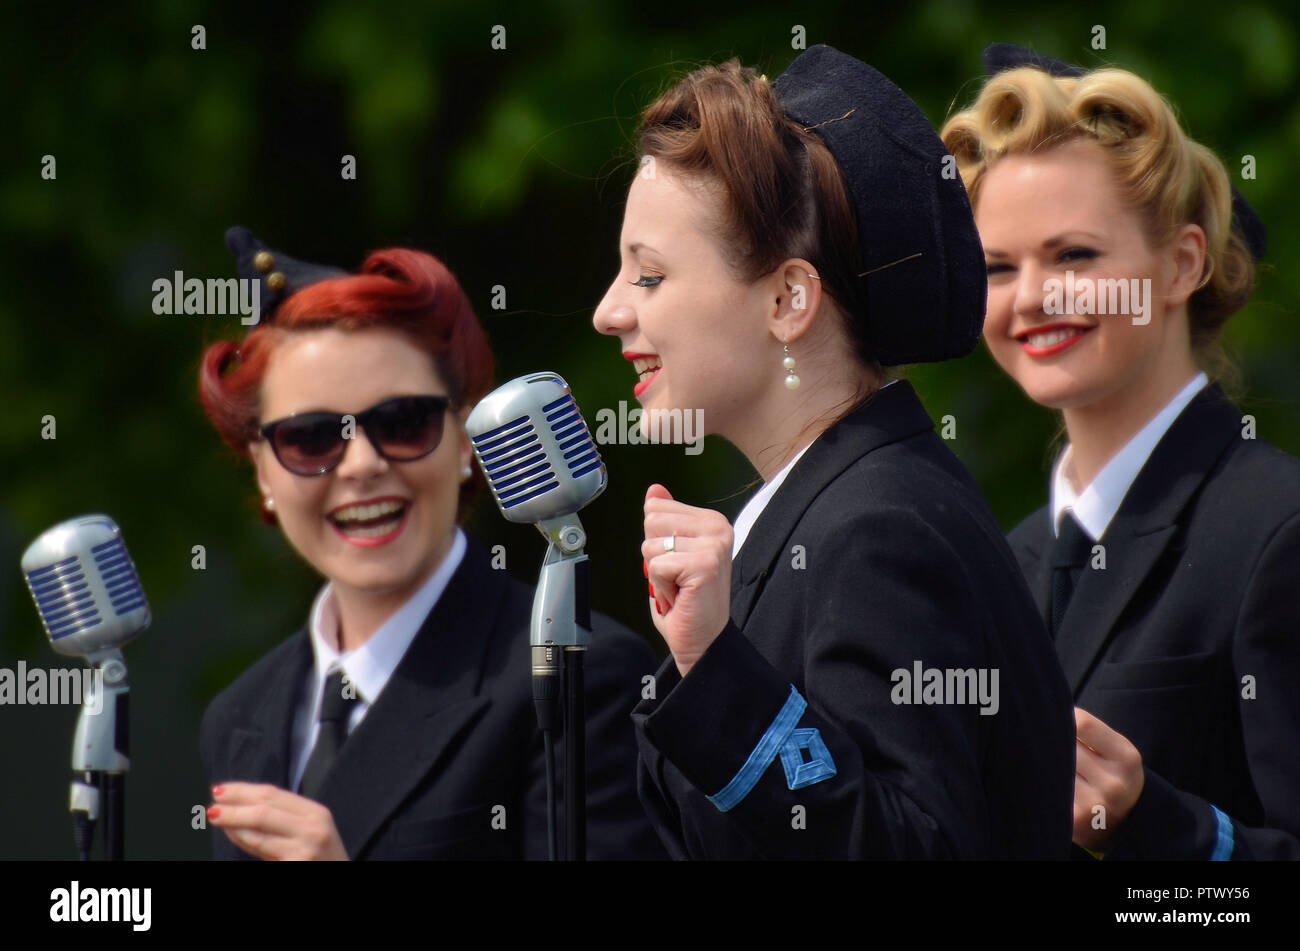 The Three Belles  Betty, Gail and Dorothy  Vintage 1940s era period